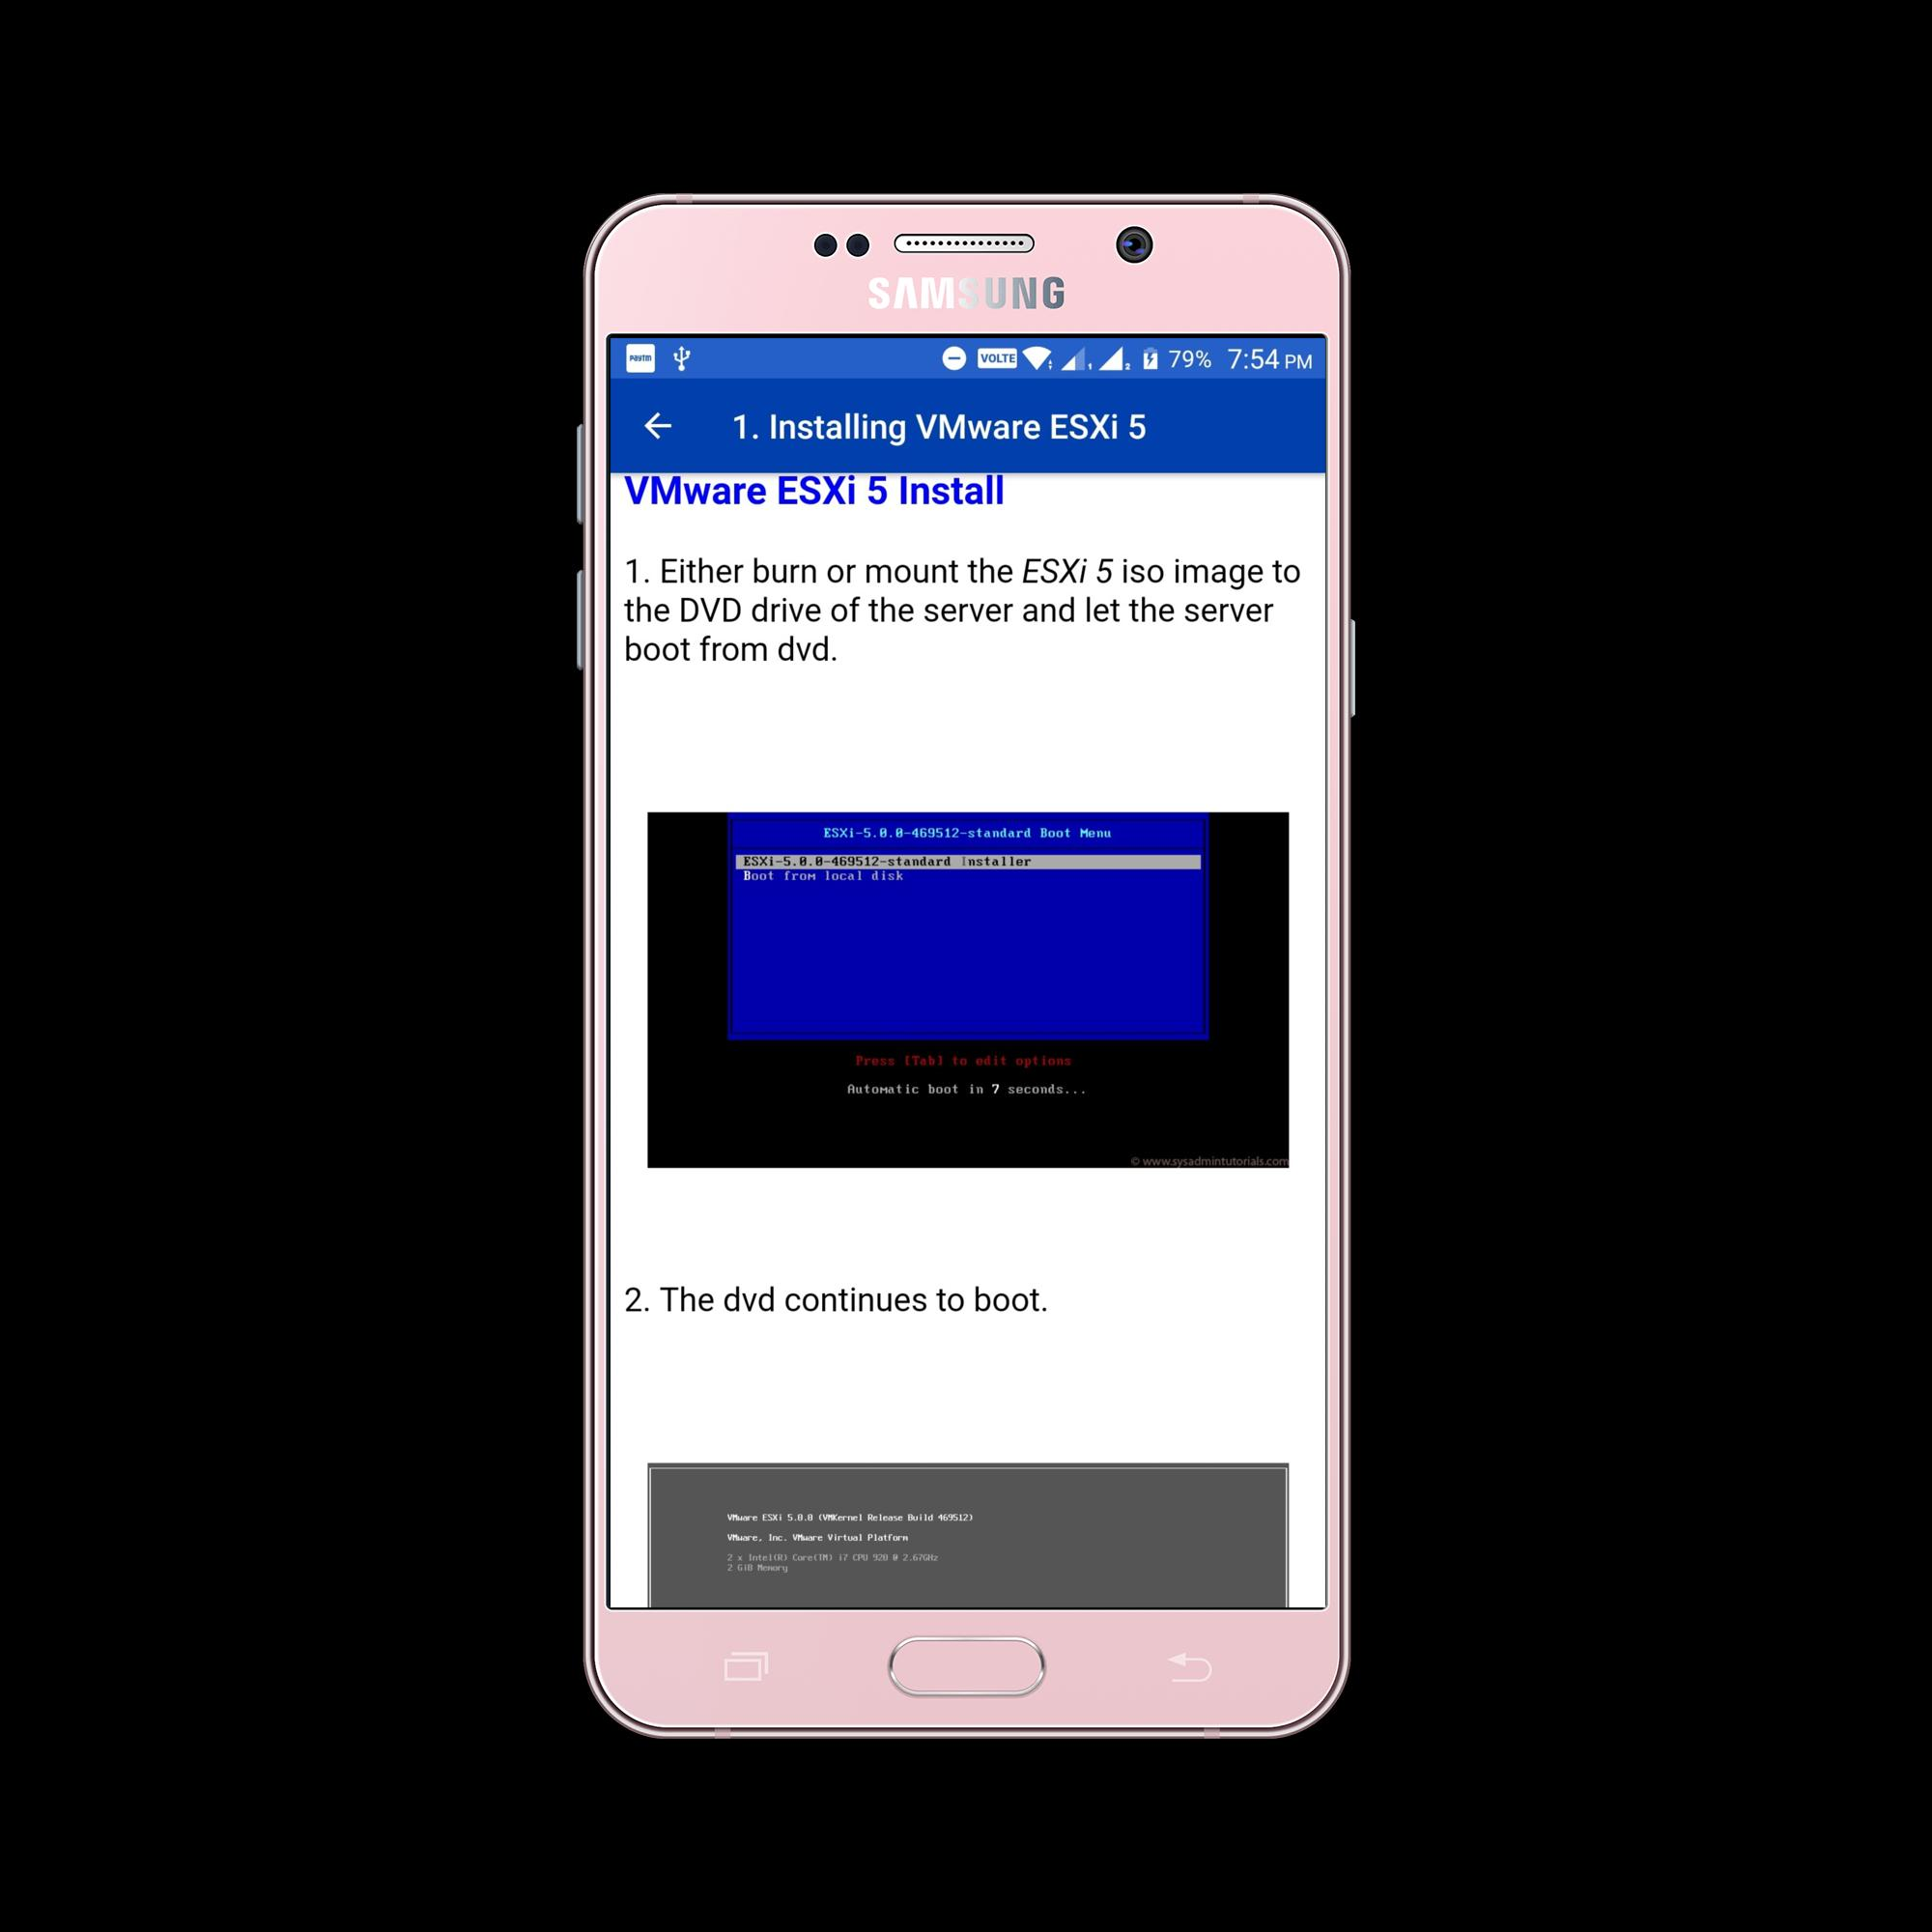 Learn VMware vSphere Administration for Android - APK Download